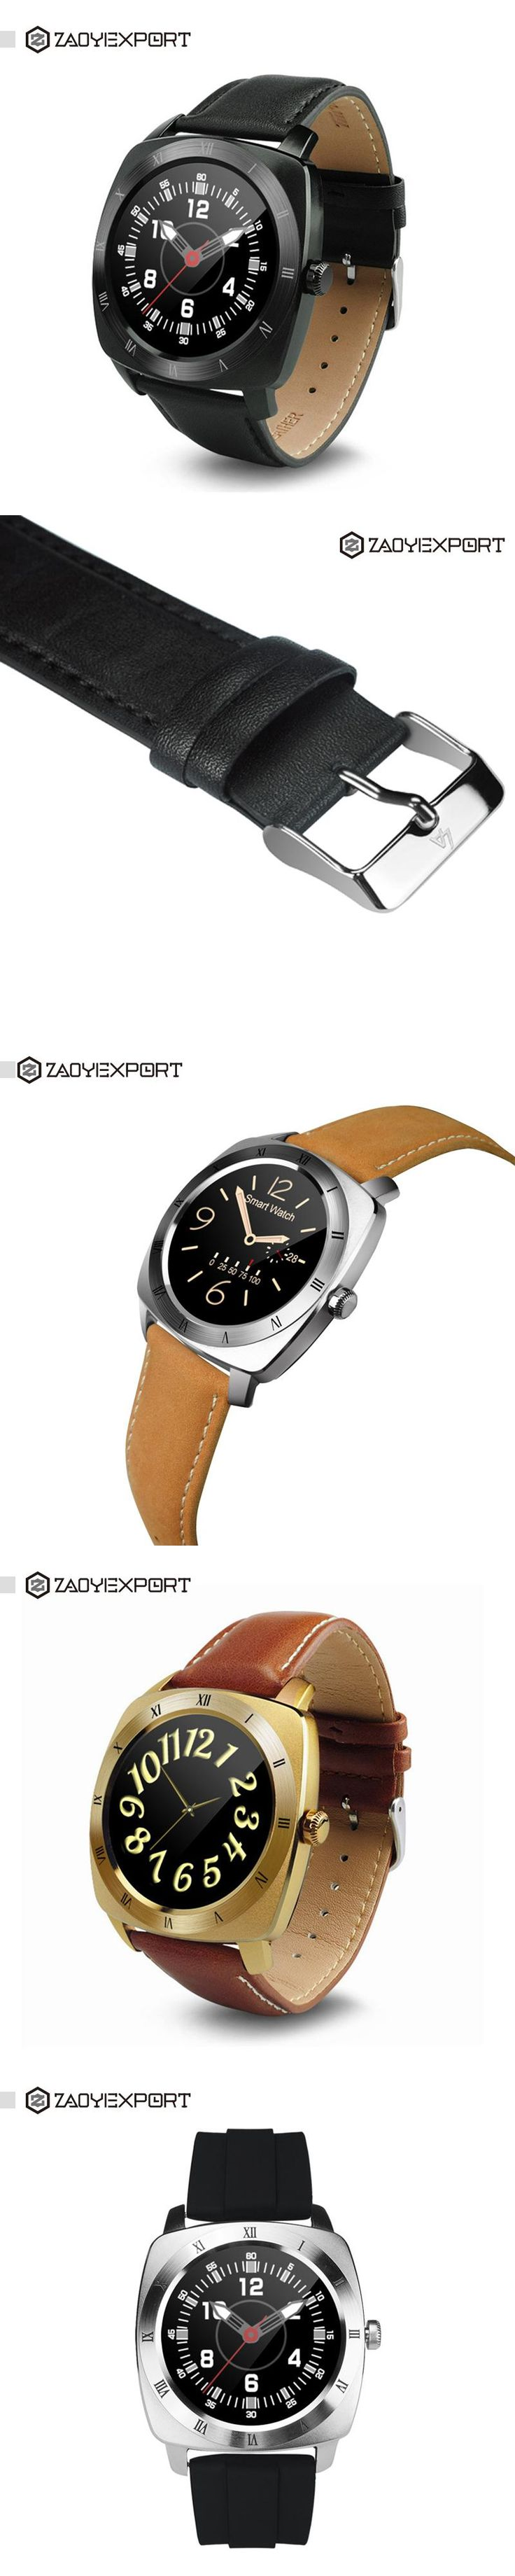 ZAOYIEXPORT DM88 Smart Watch Round Bluetooth Smartwatch Support Heart Rate Monitor for iOS Apple Iphone Android Smartphone